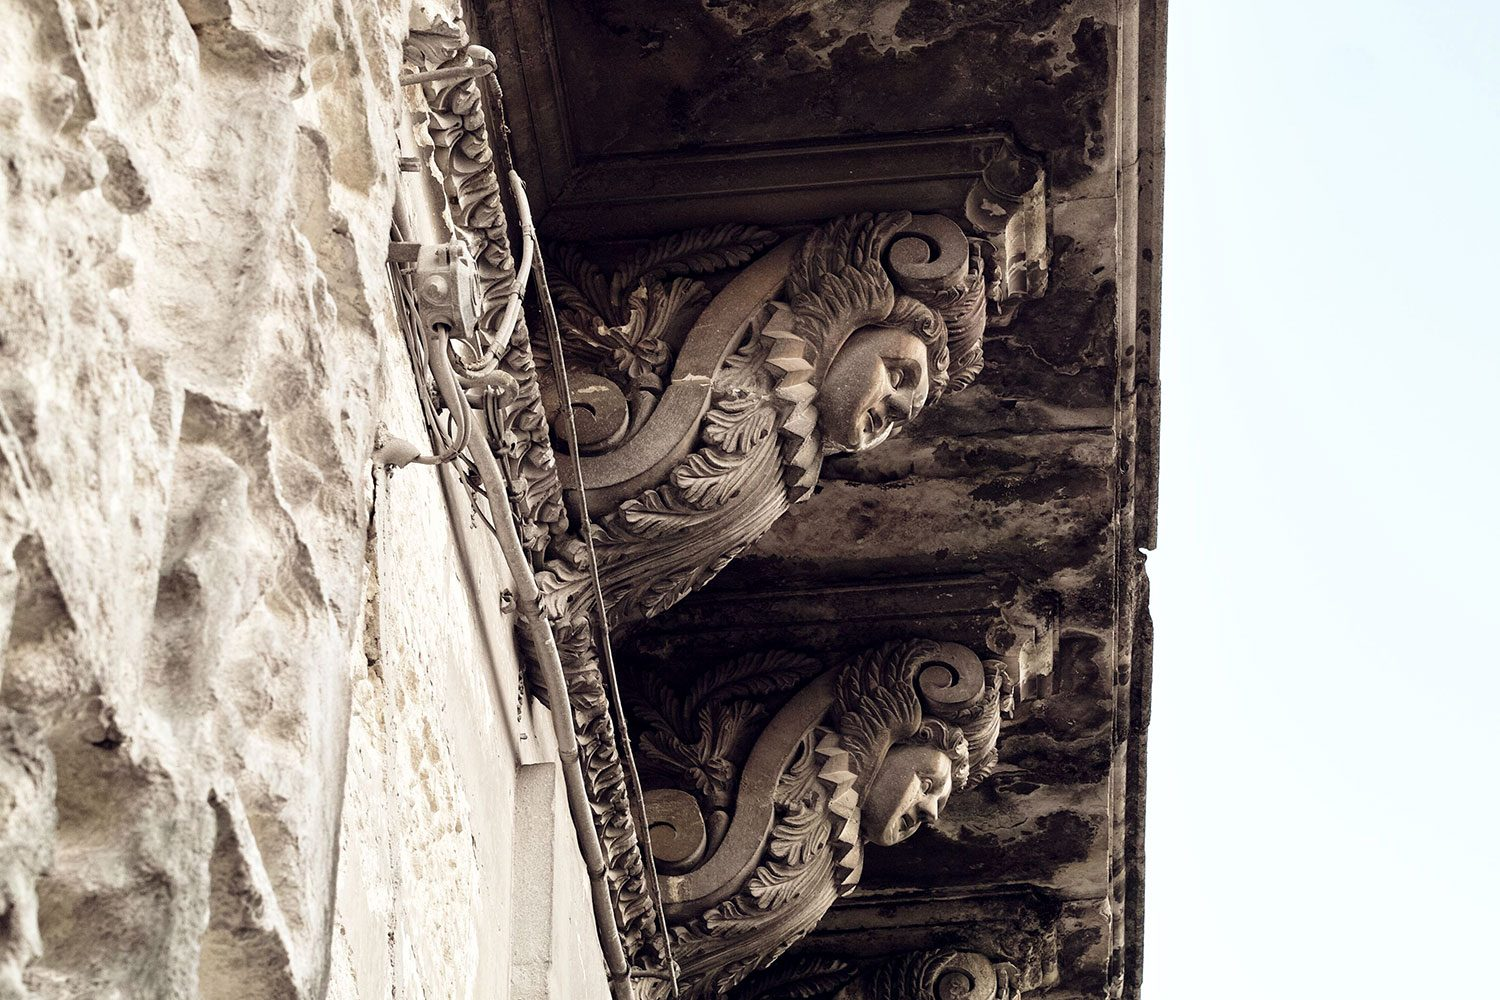 balconies_sicily_thevoyageur (4)